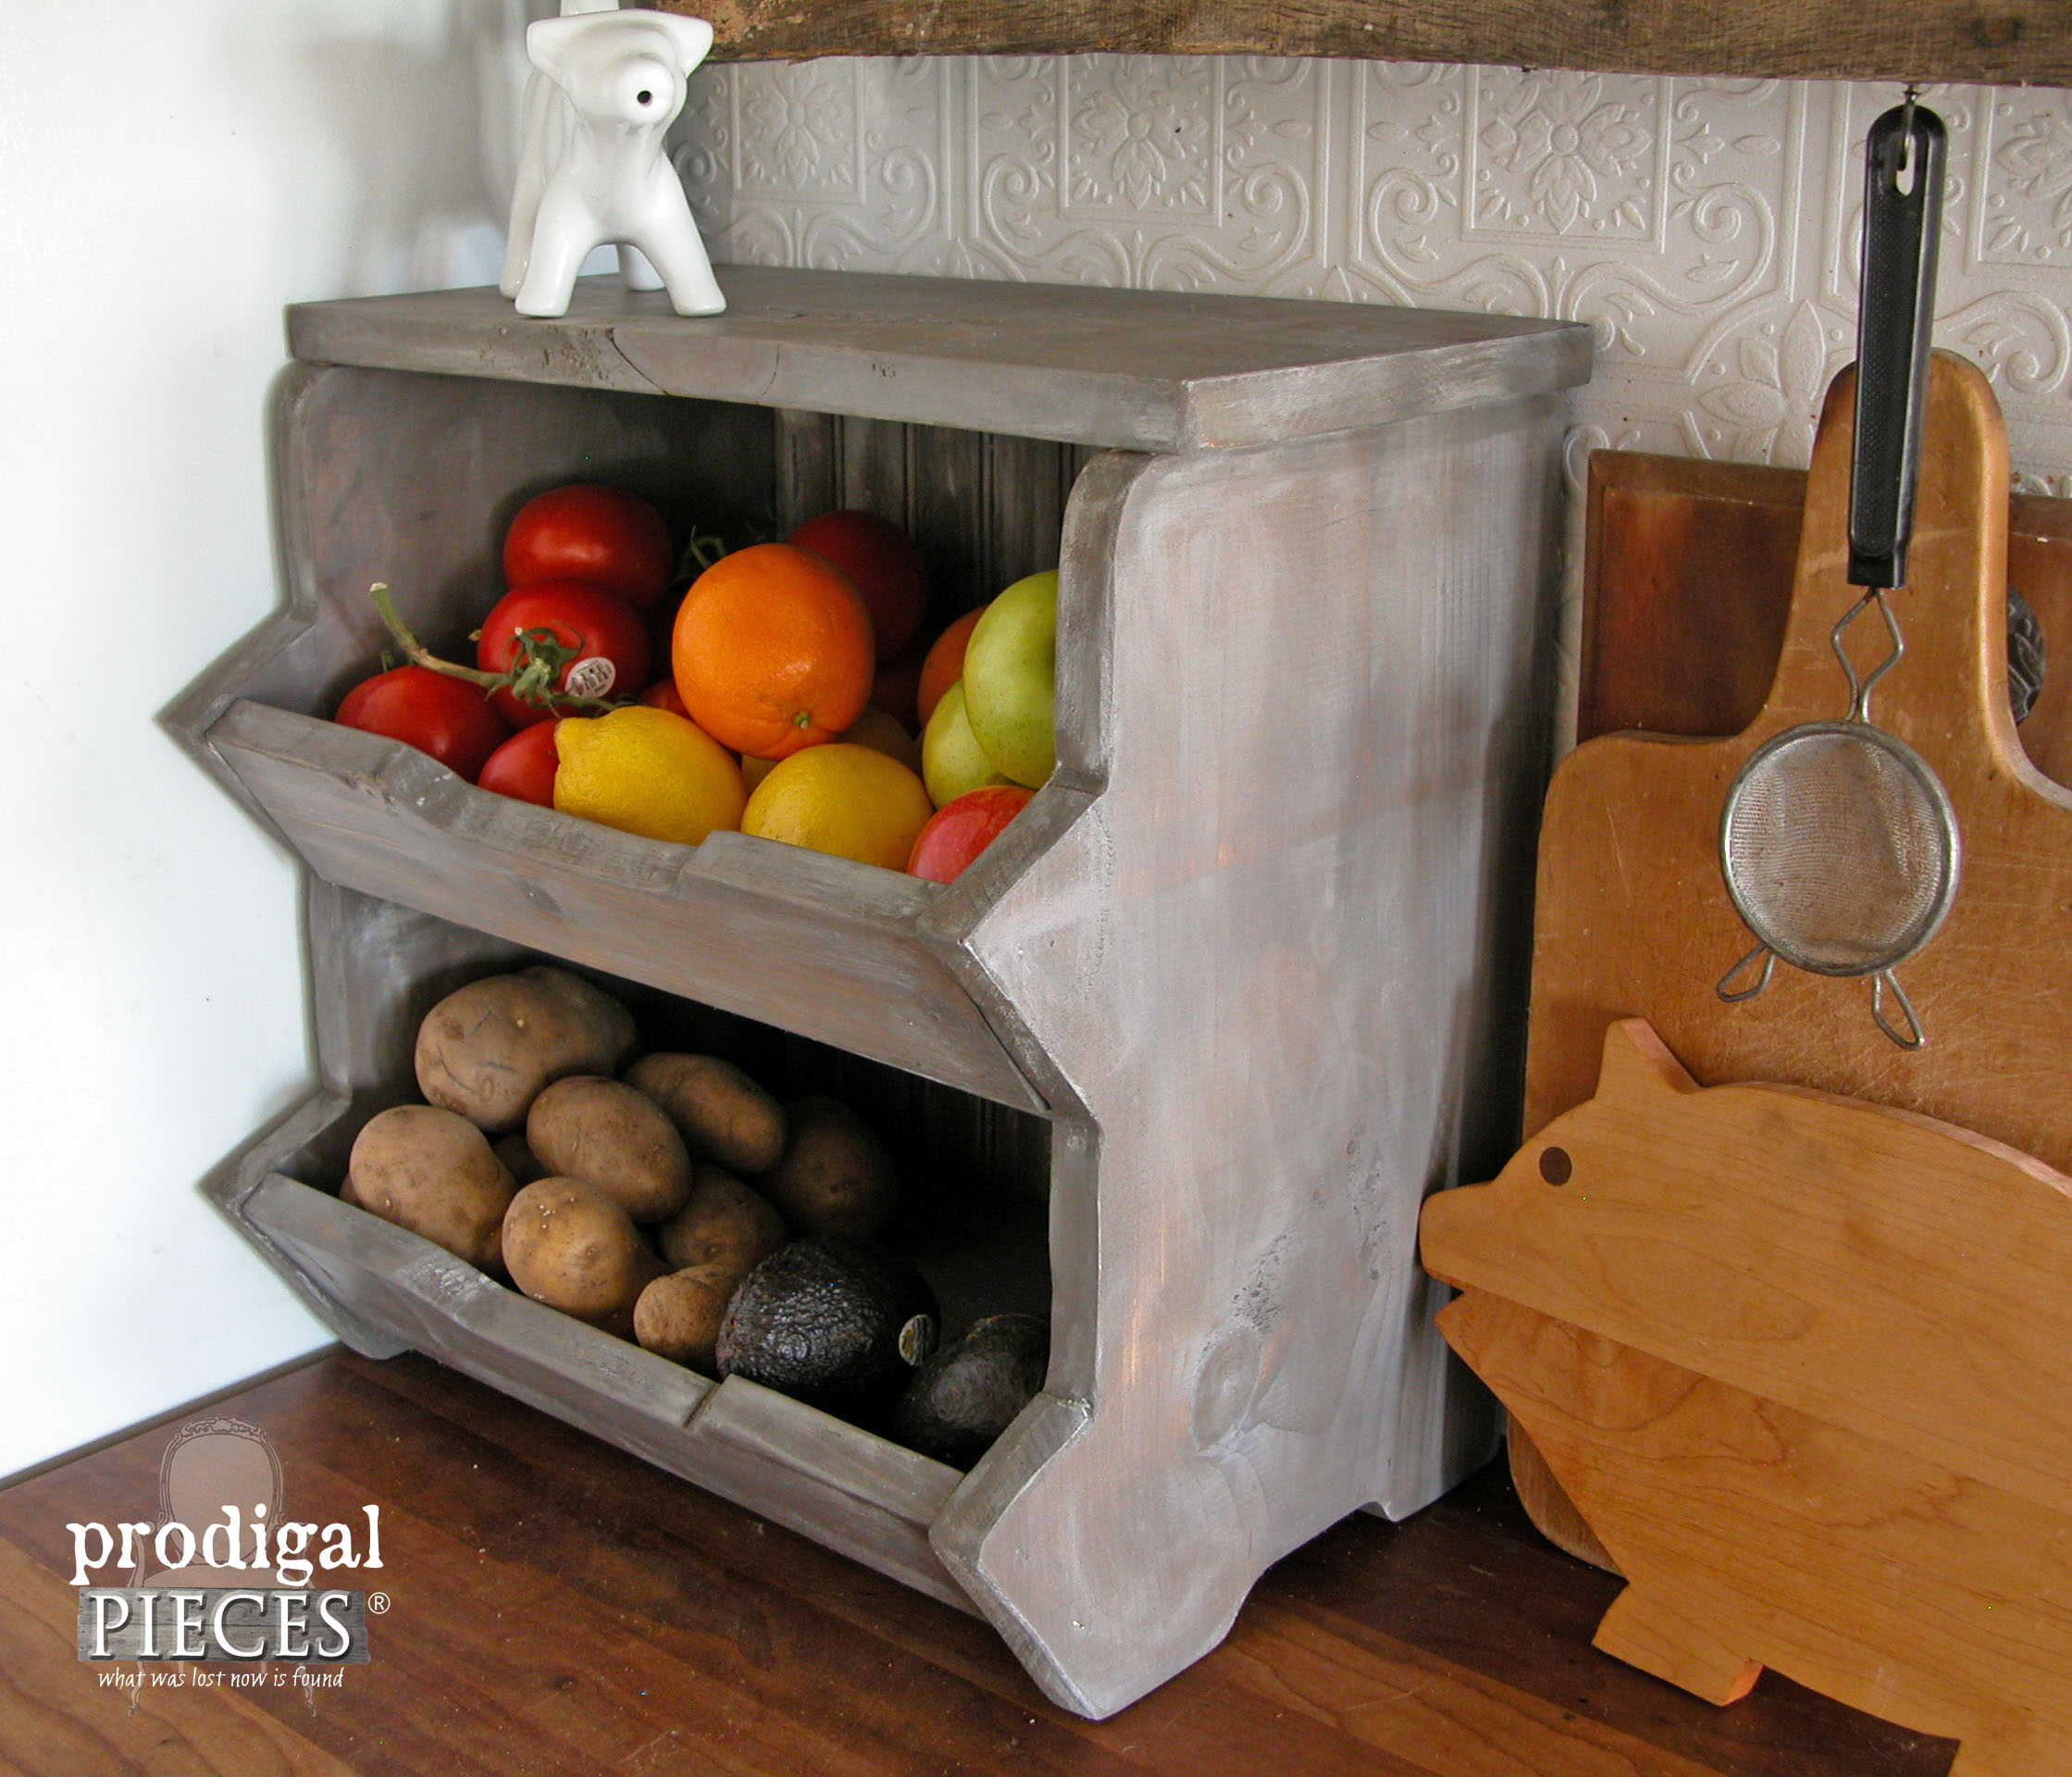 Rustic Storage Bin Plans with Step-by-Step Tutorial by Prodigal Pieces | www.prodigalpieces.com